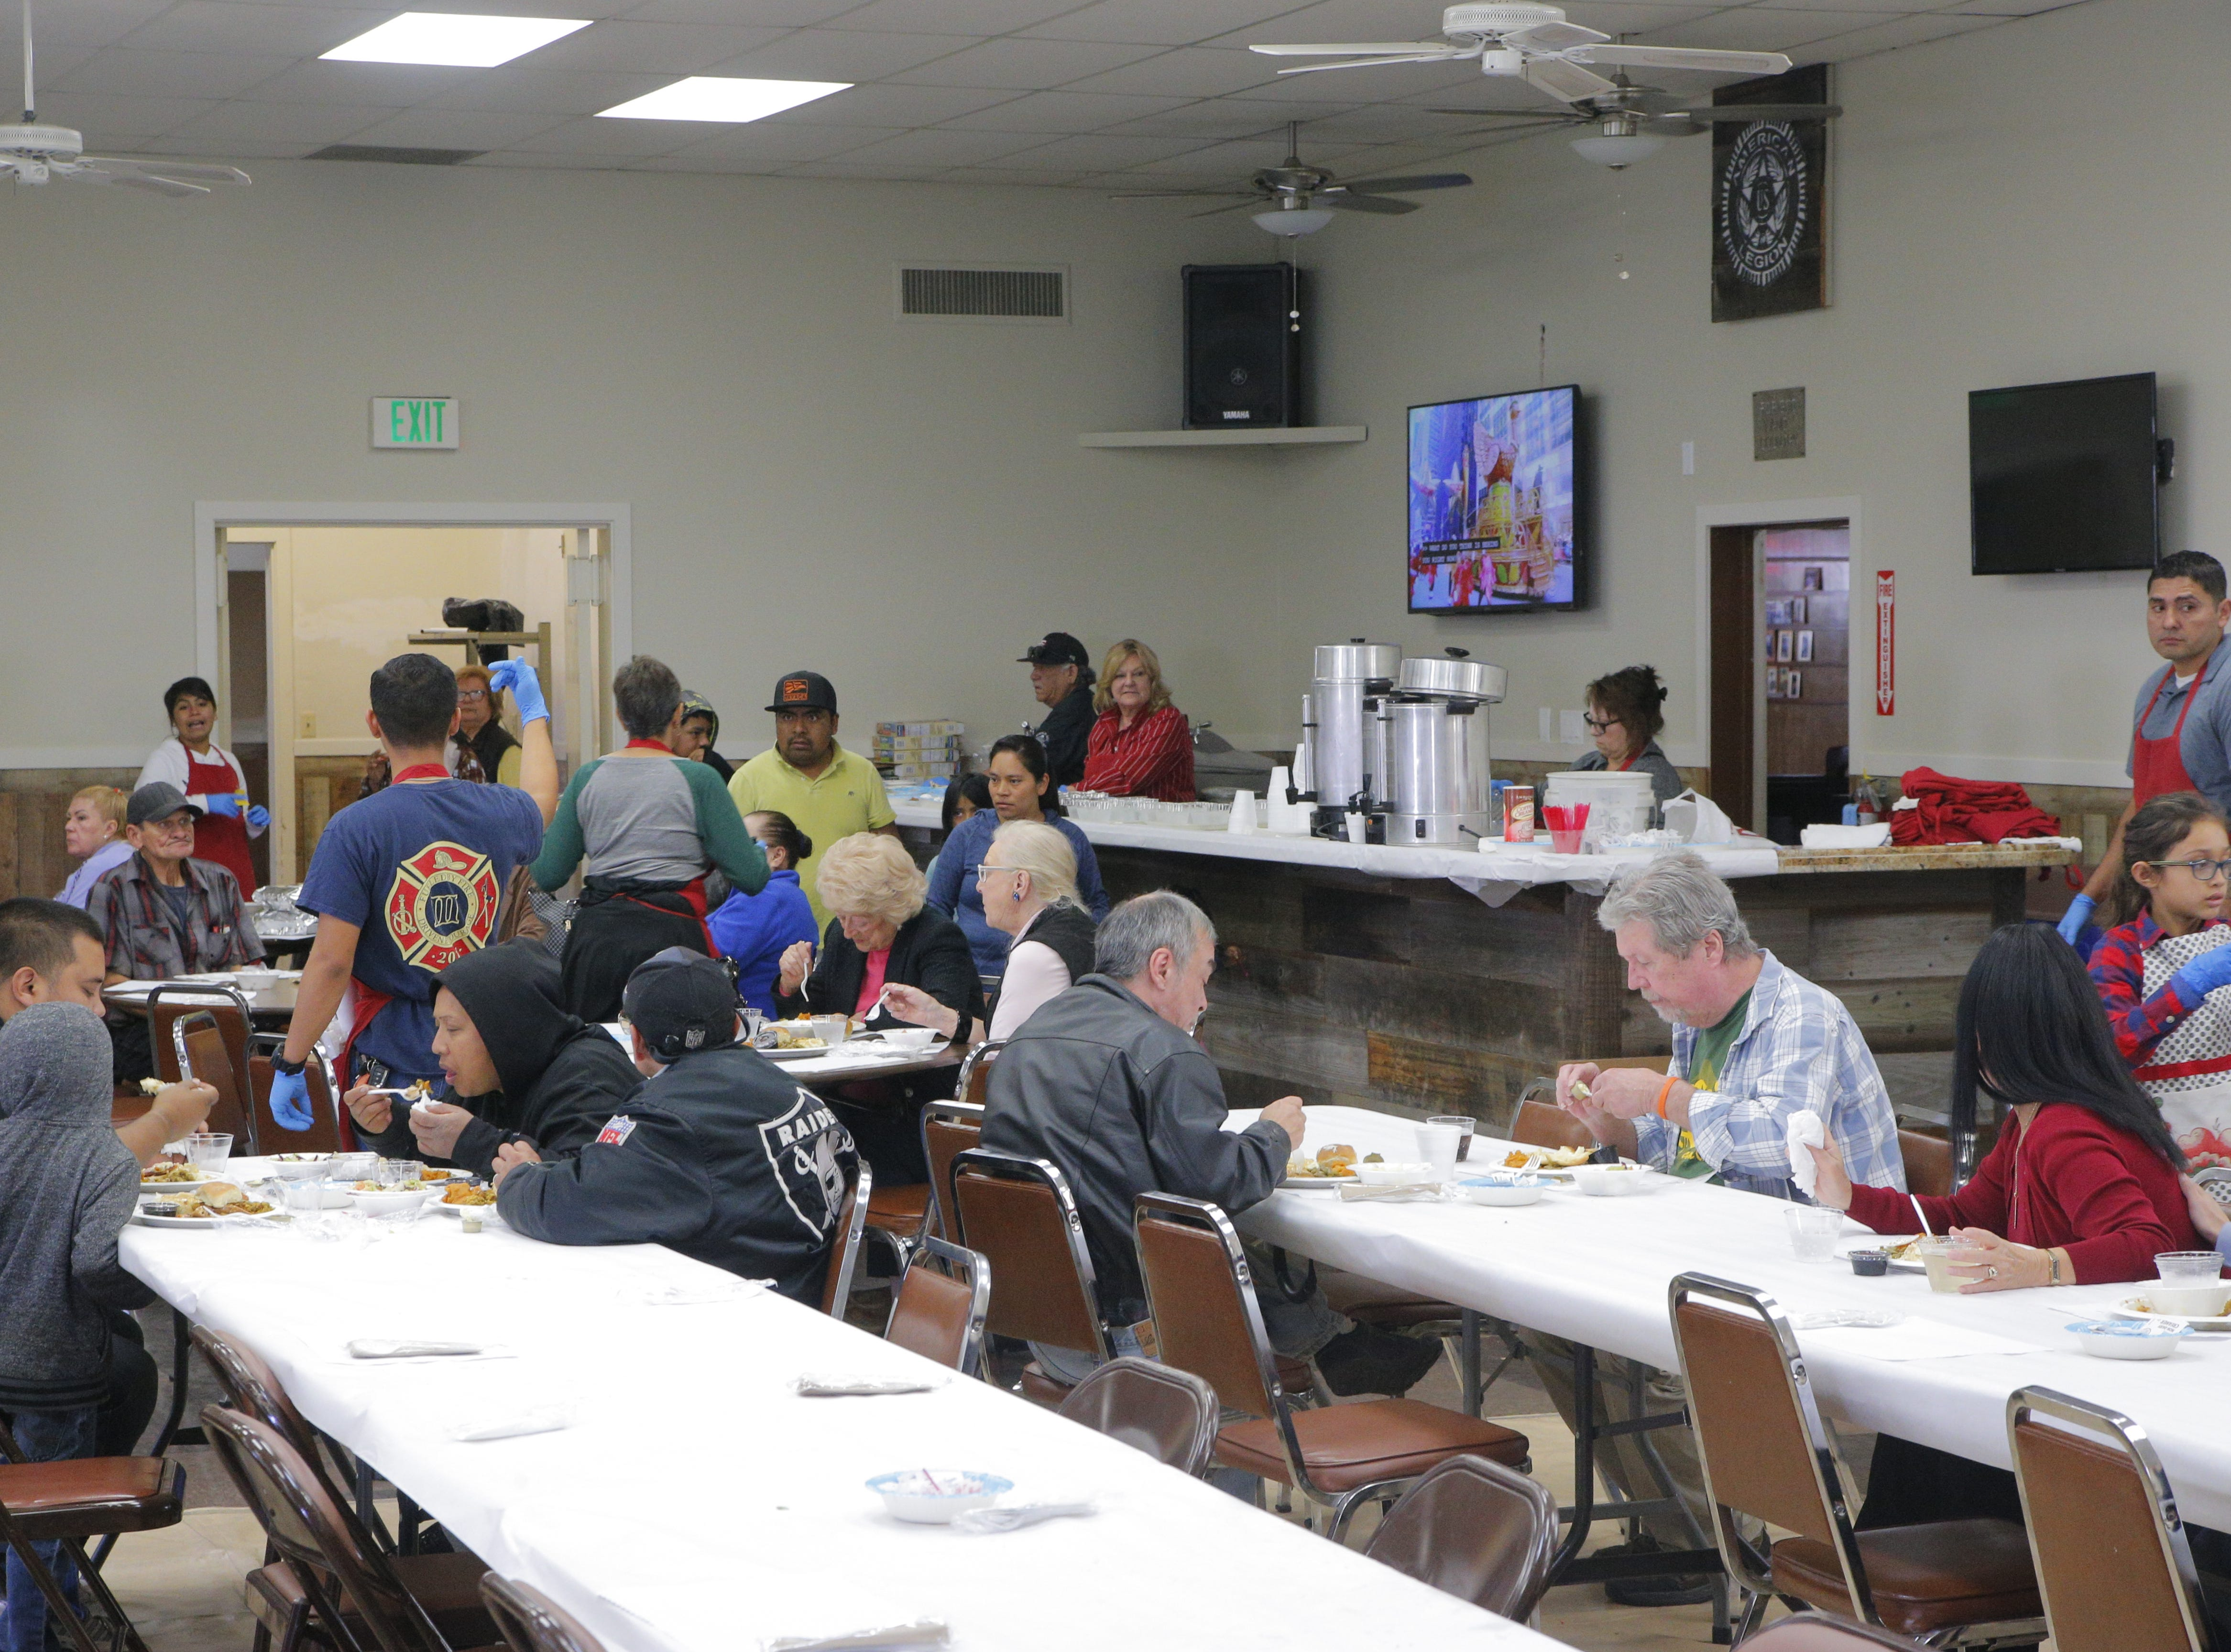 About 500 to 600 Thanksgiving meals were expected to be served, some to go, at the American Legion Post 31 in Salinas Thursday.